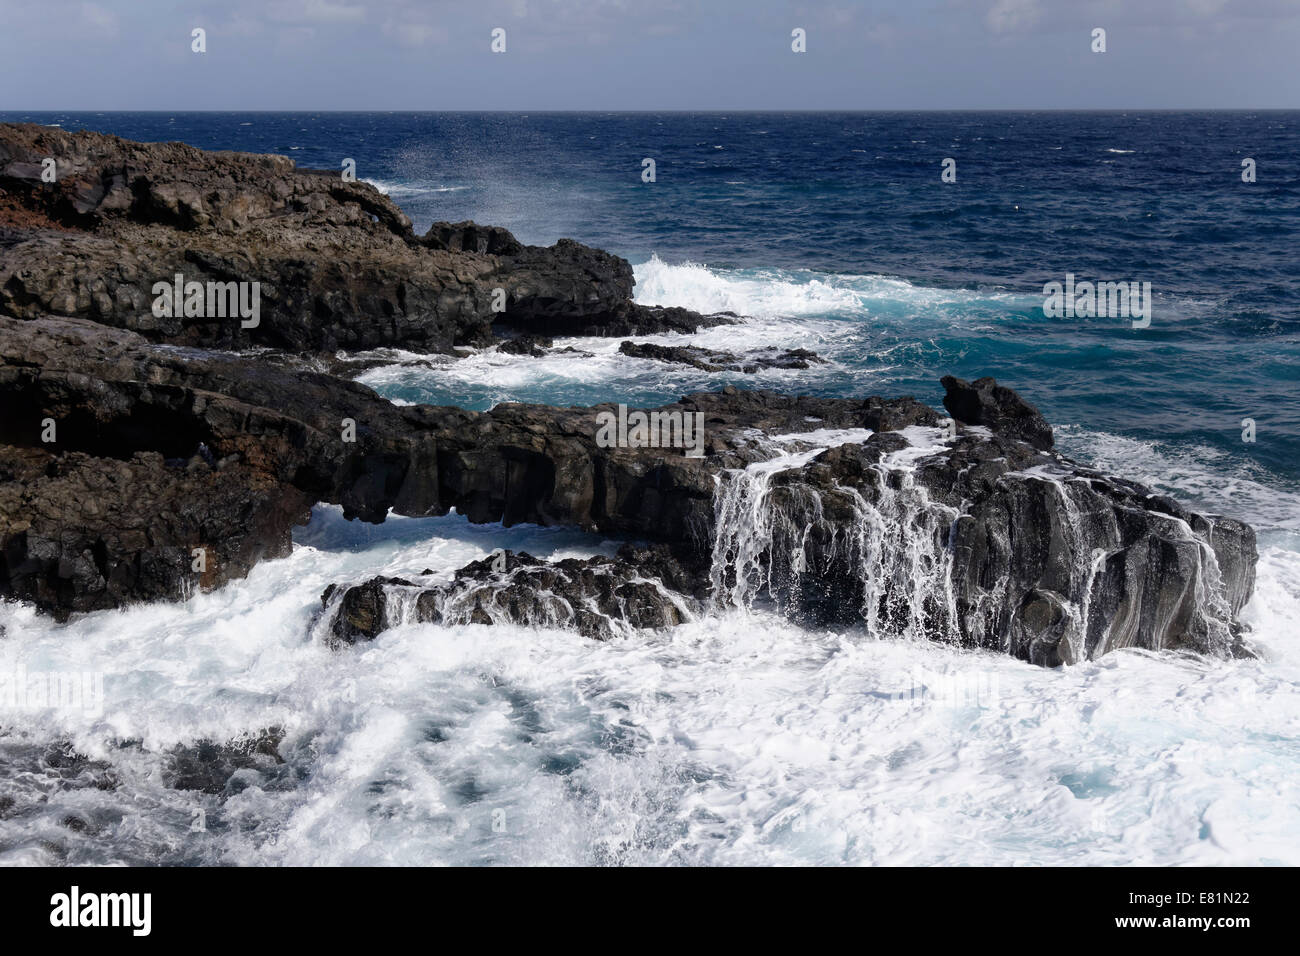 Coast marked by volcanic activity at Playa de las Cabras near Fuencaliente, La Palma, Canary Islands, Spain - Stock Image